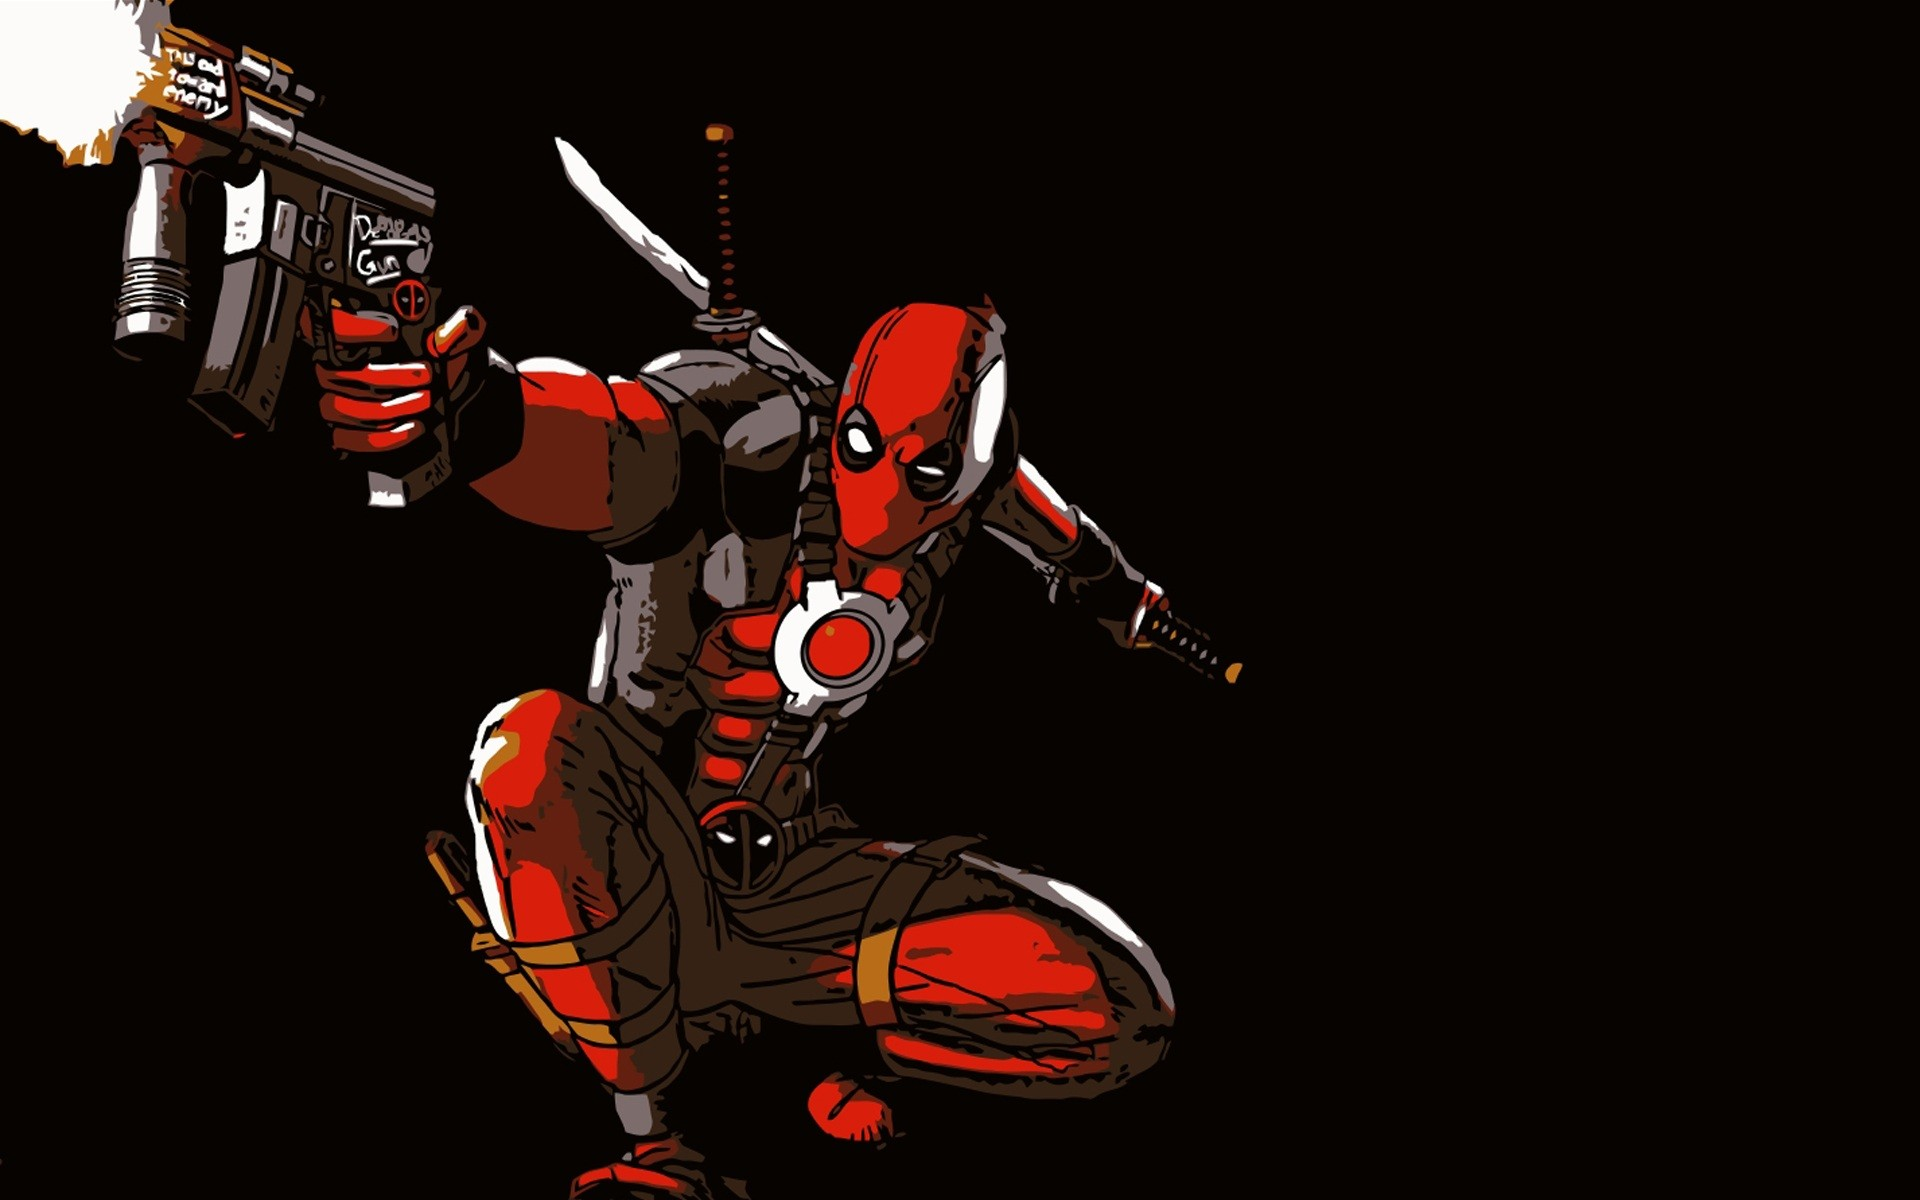 Deadpool wallpaper hd download free wallpapers for for Deadpool wallpaper 1920x1080